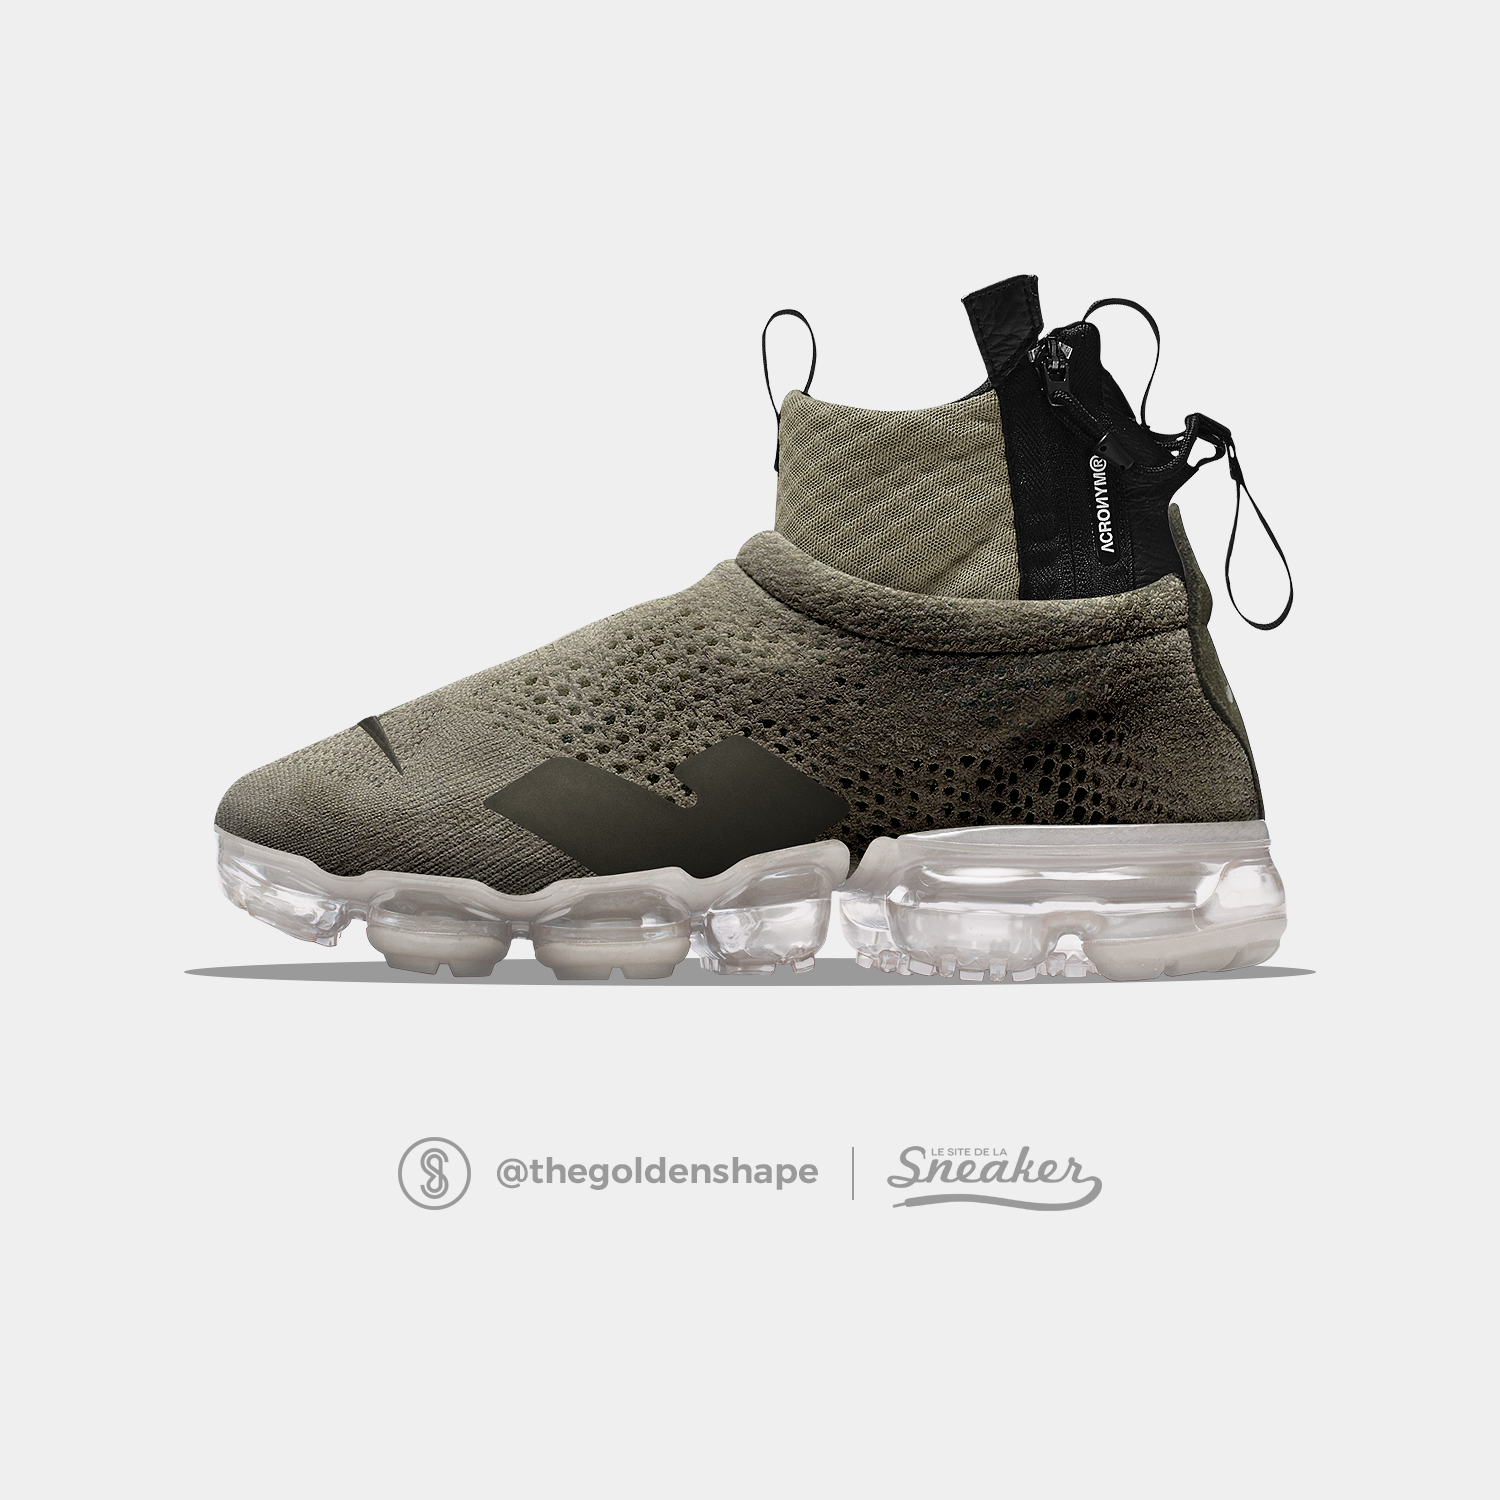 Acronym x Nike Air VaporMax Flyknit Moc Pack | Chaussures